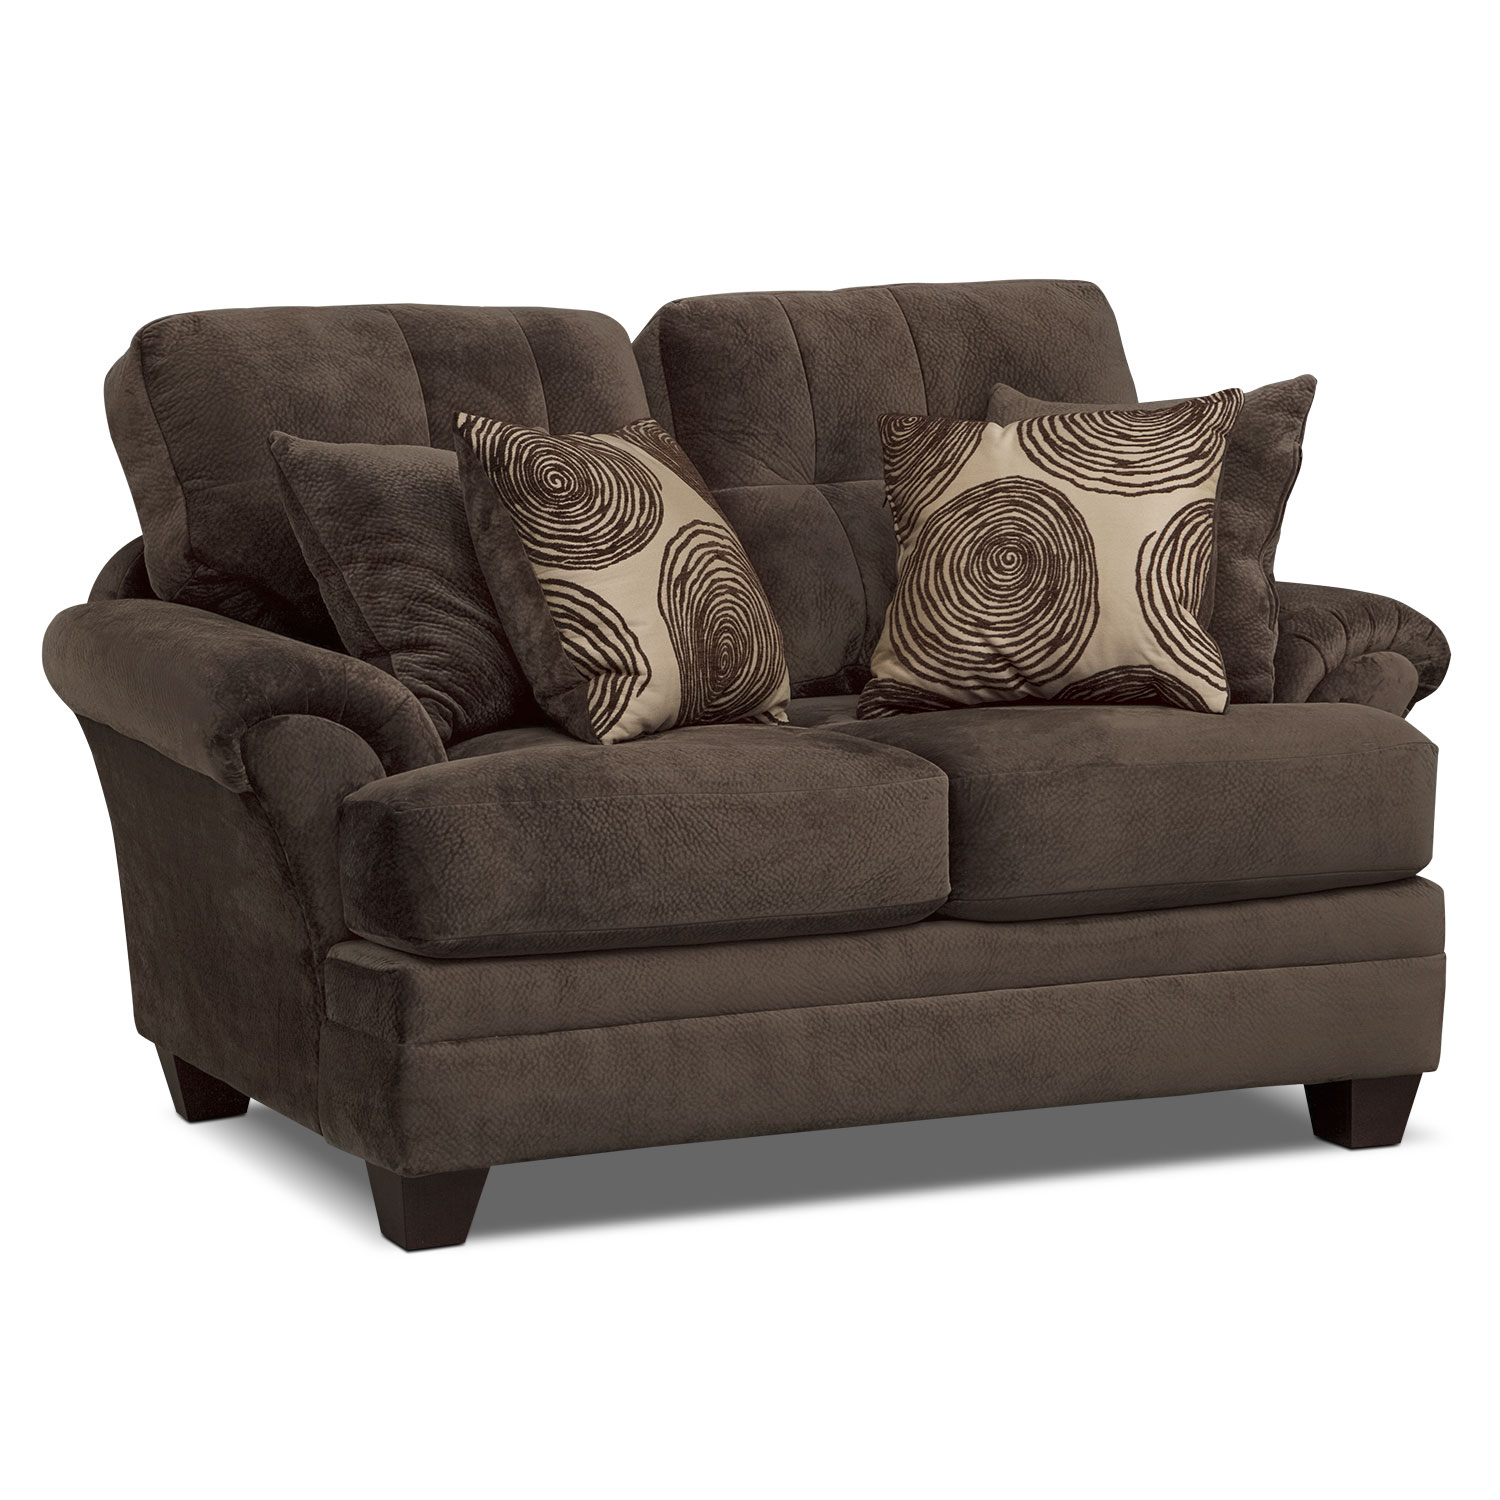 Cordelle Sofa, Loveseat and Cocktail Ottoman Set - Chocolate by Factory  Outlet - Cordelle Sofa, Loveseat And Cocktail Ottoman Set - Chocolate